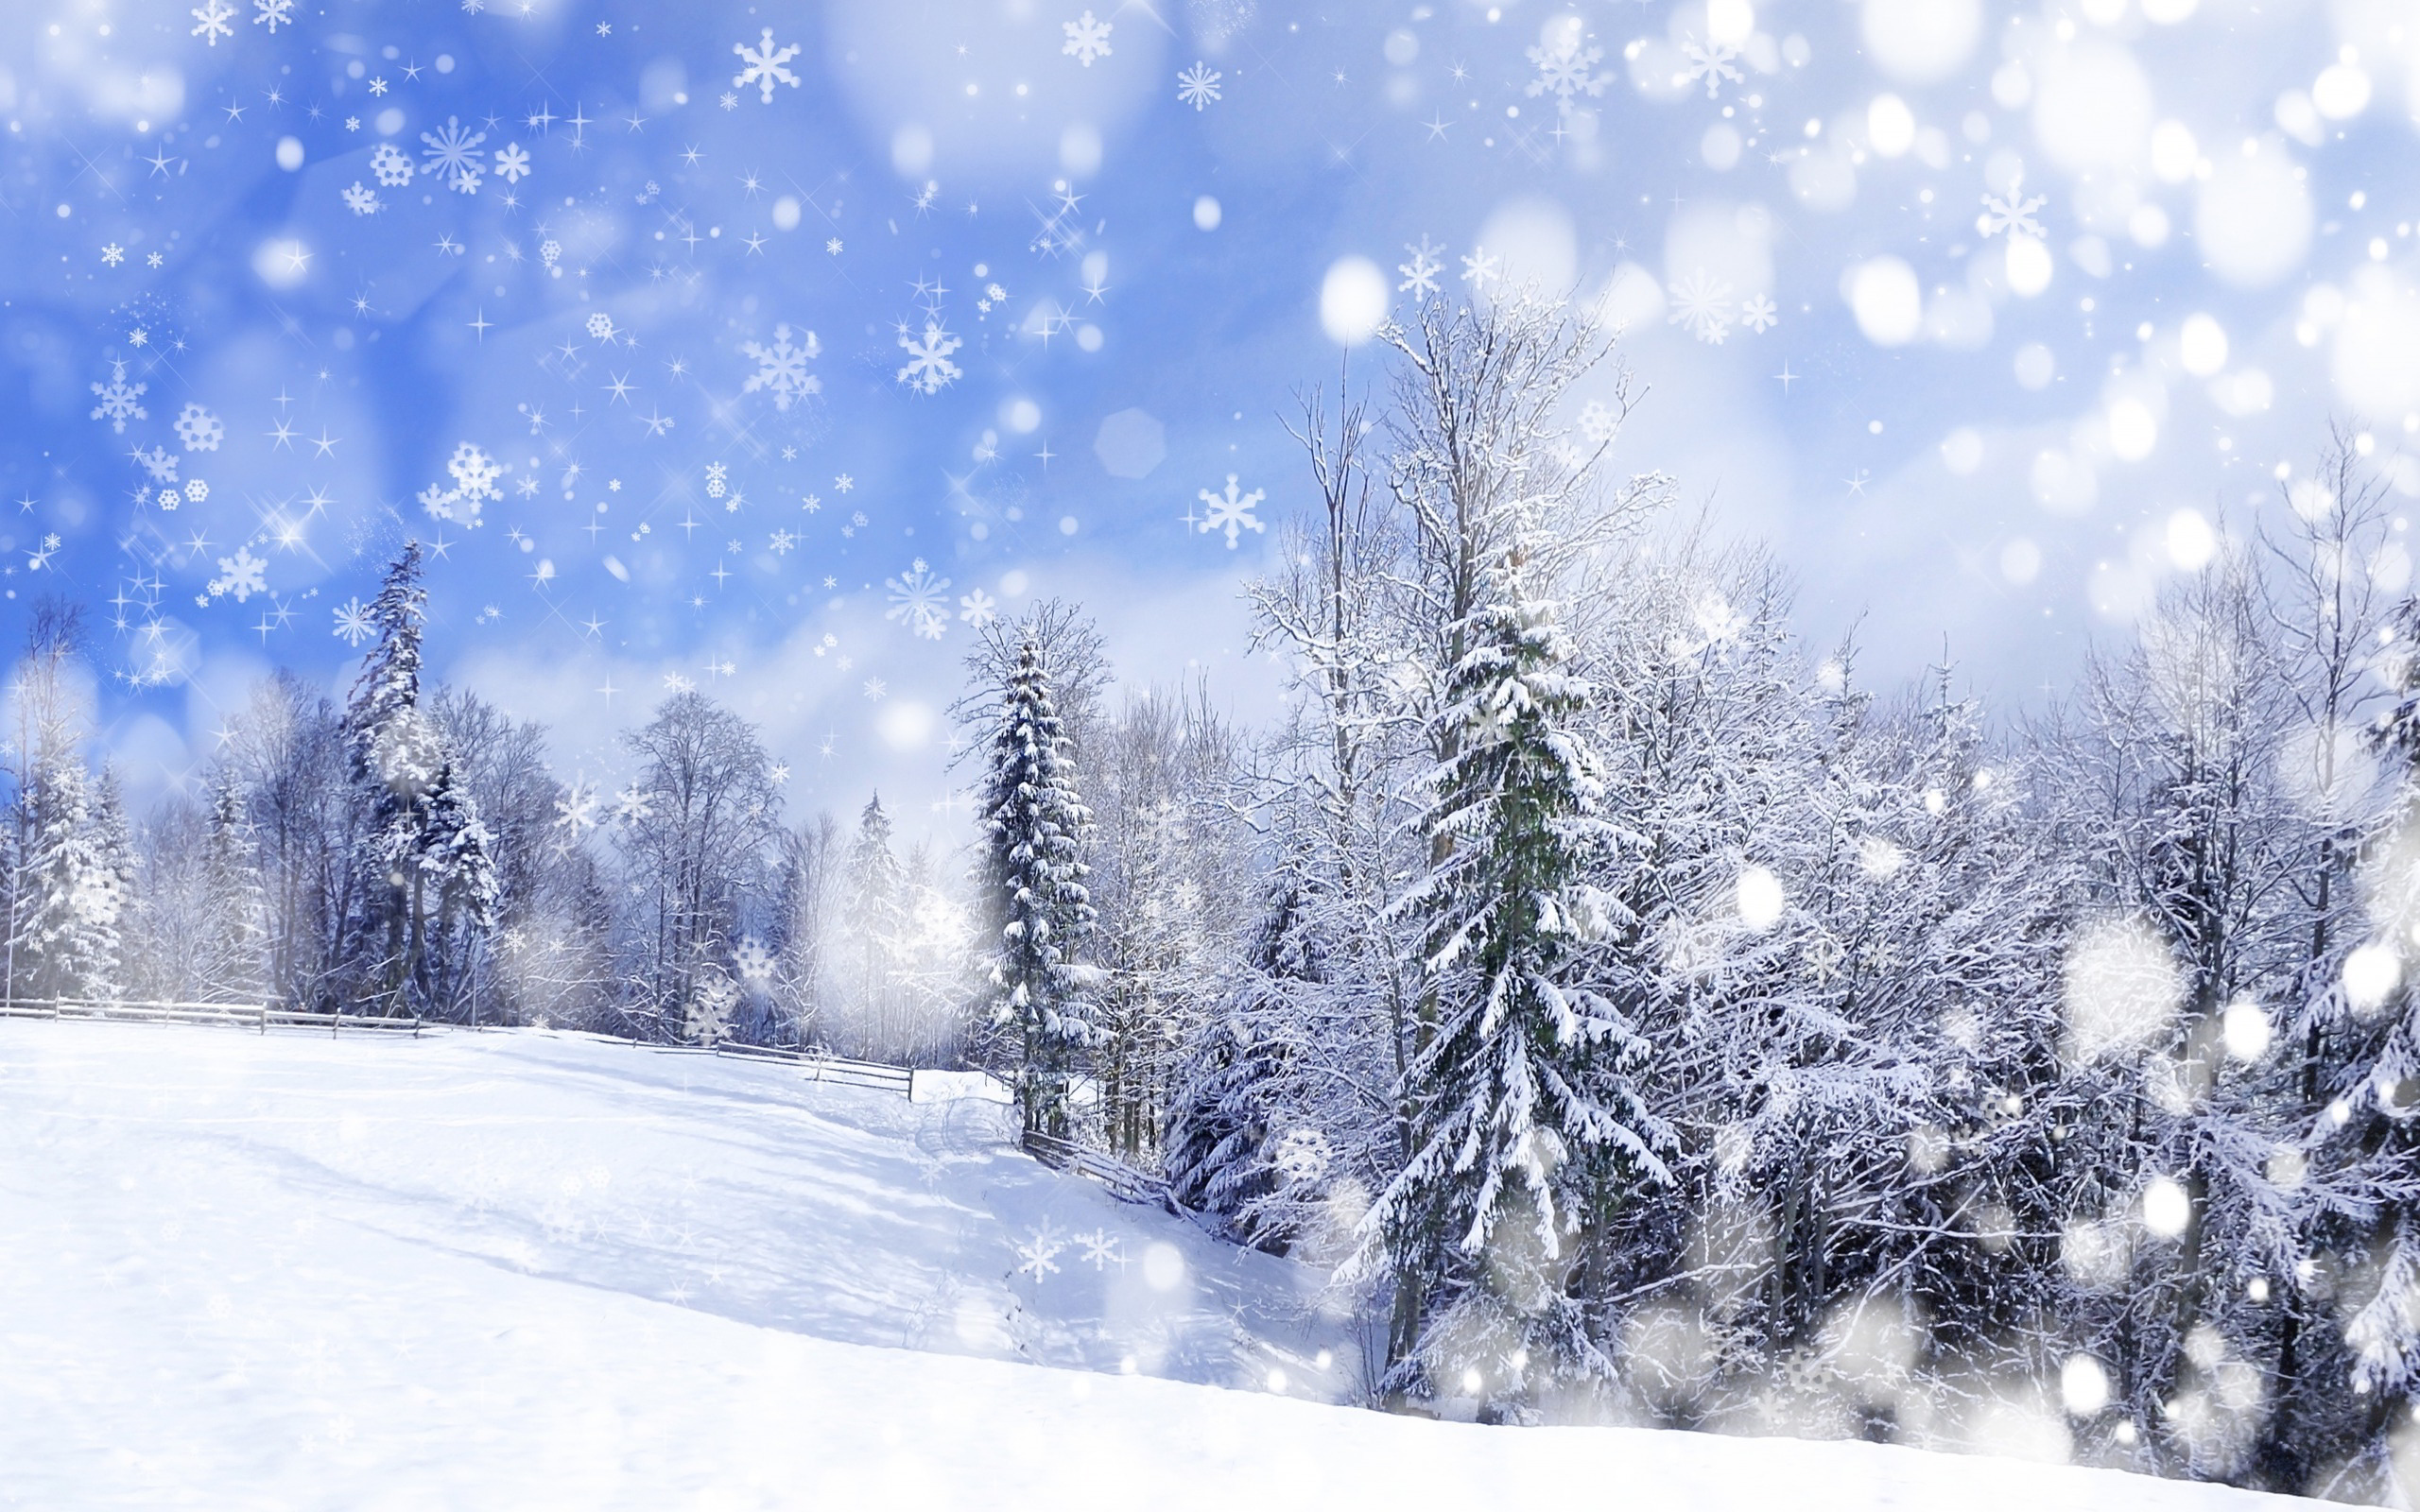 Winter Wallpapers HD 2560x1600